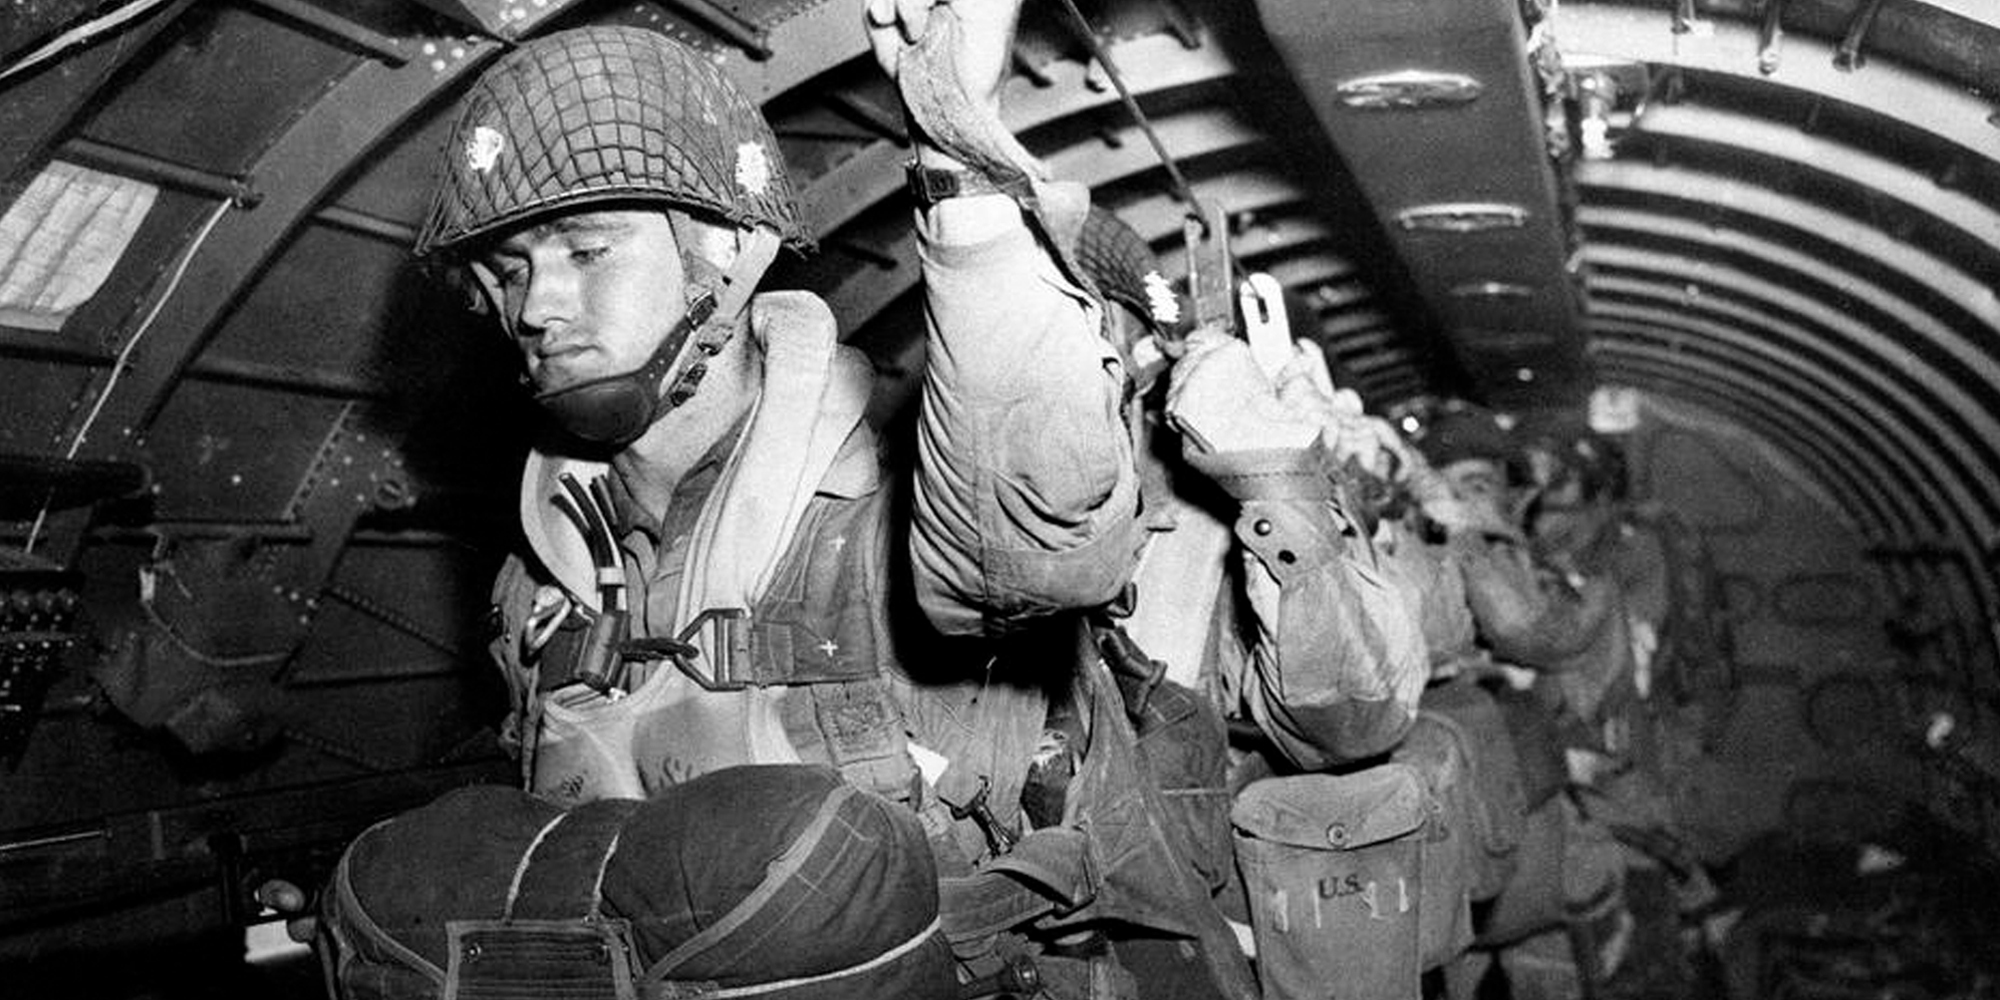 82nd Paratroopers